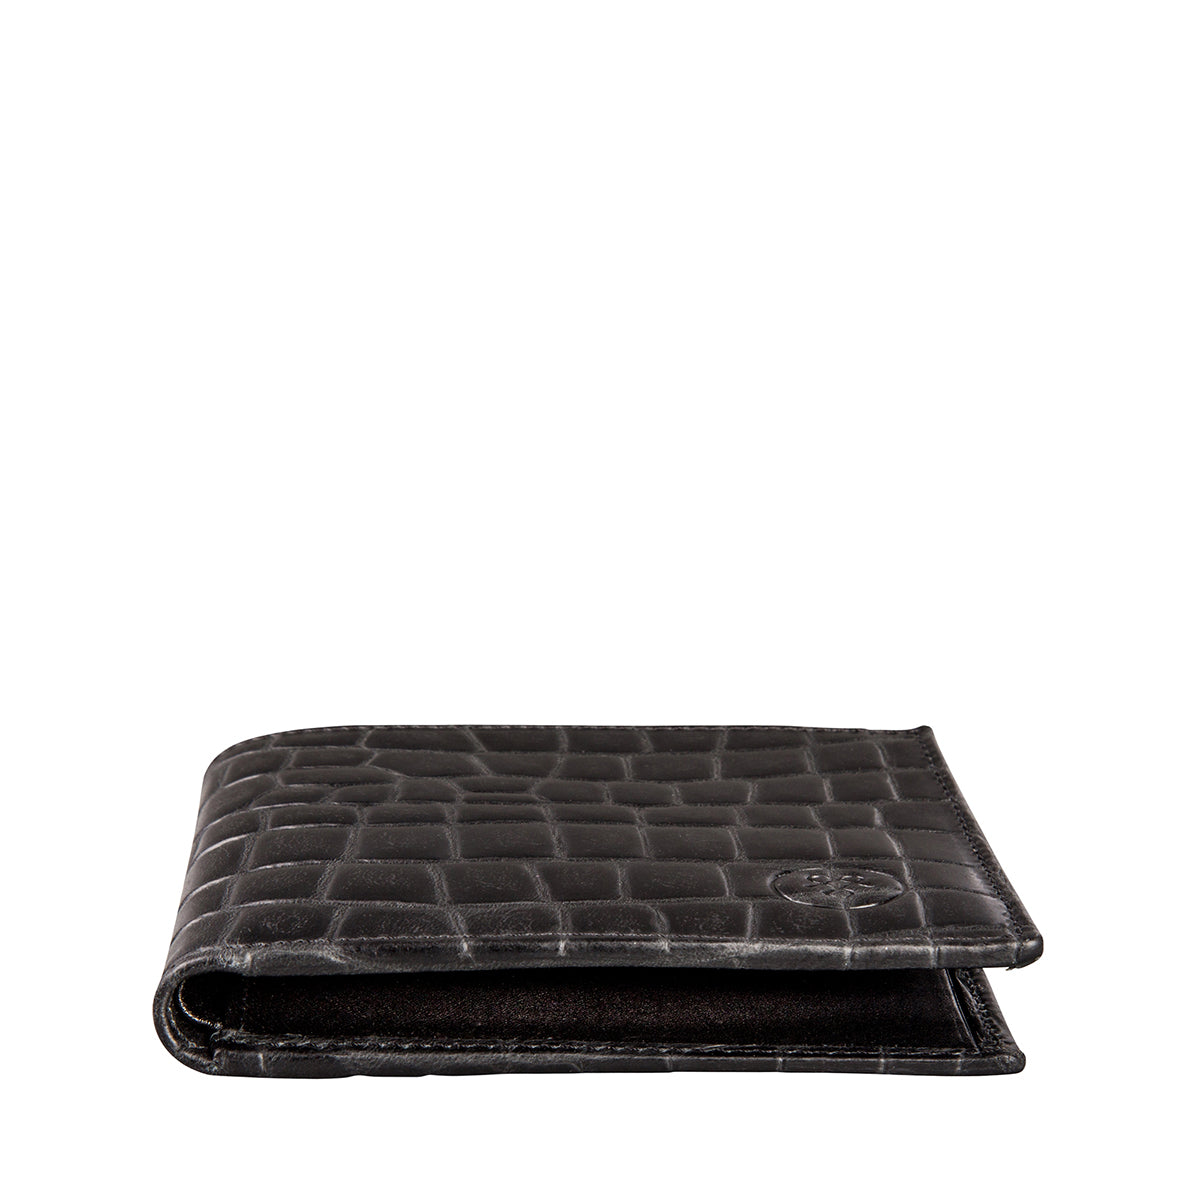 Image 2 of the 'Vittore' Mock Croc Black Veg-Tanned Leather Bi-Fold Wallet